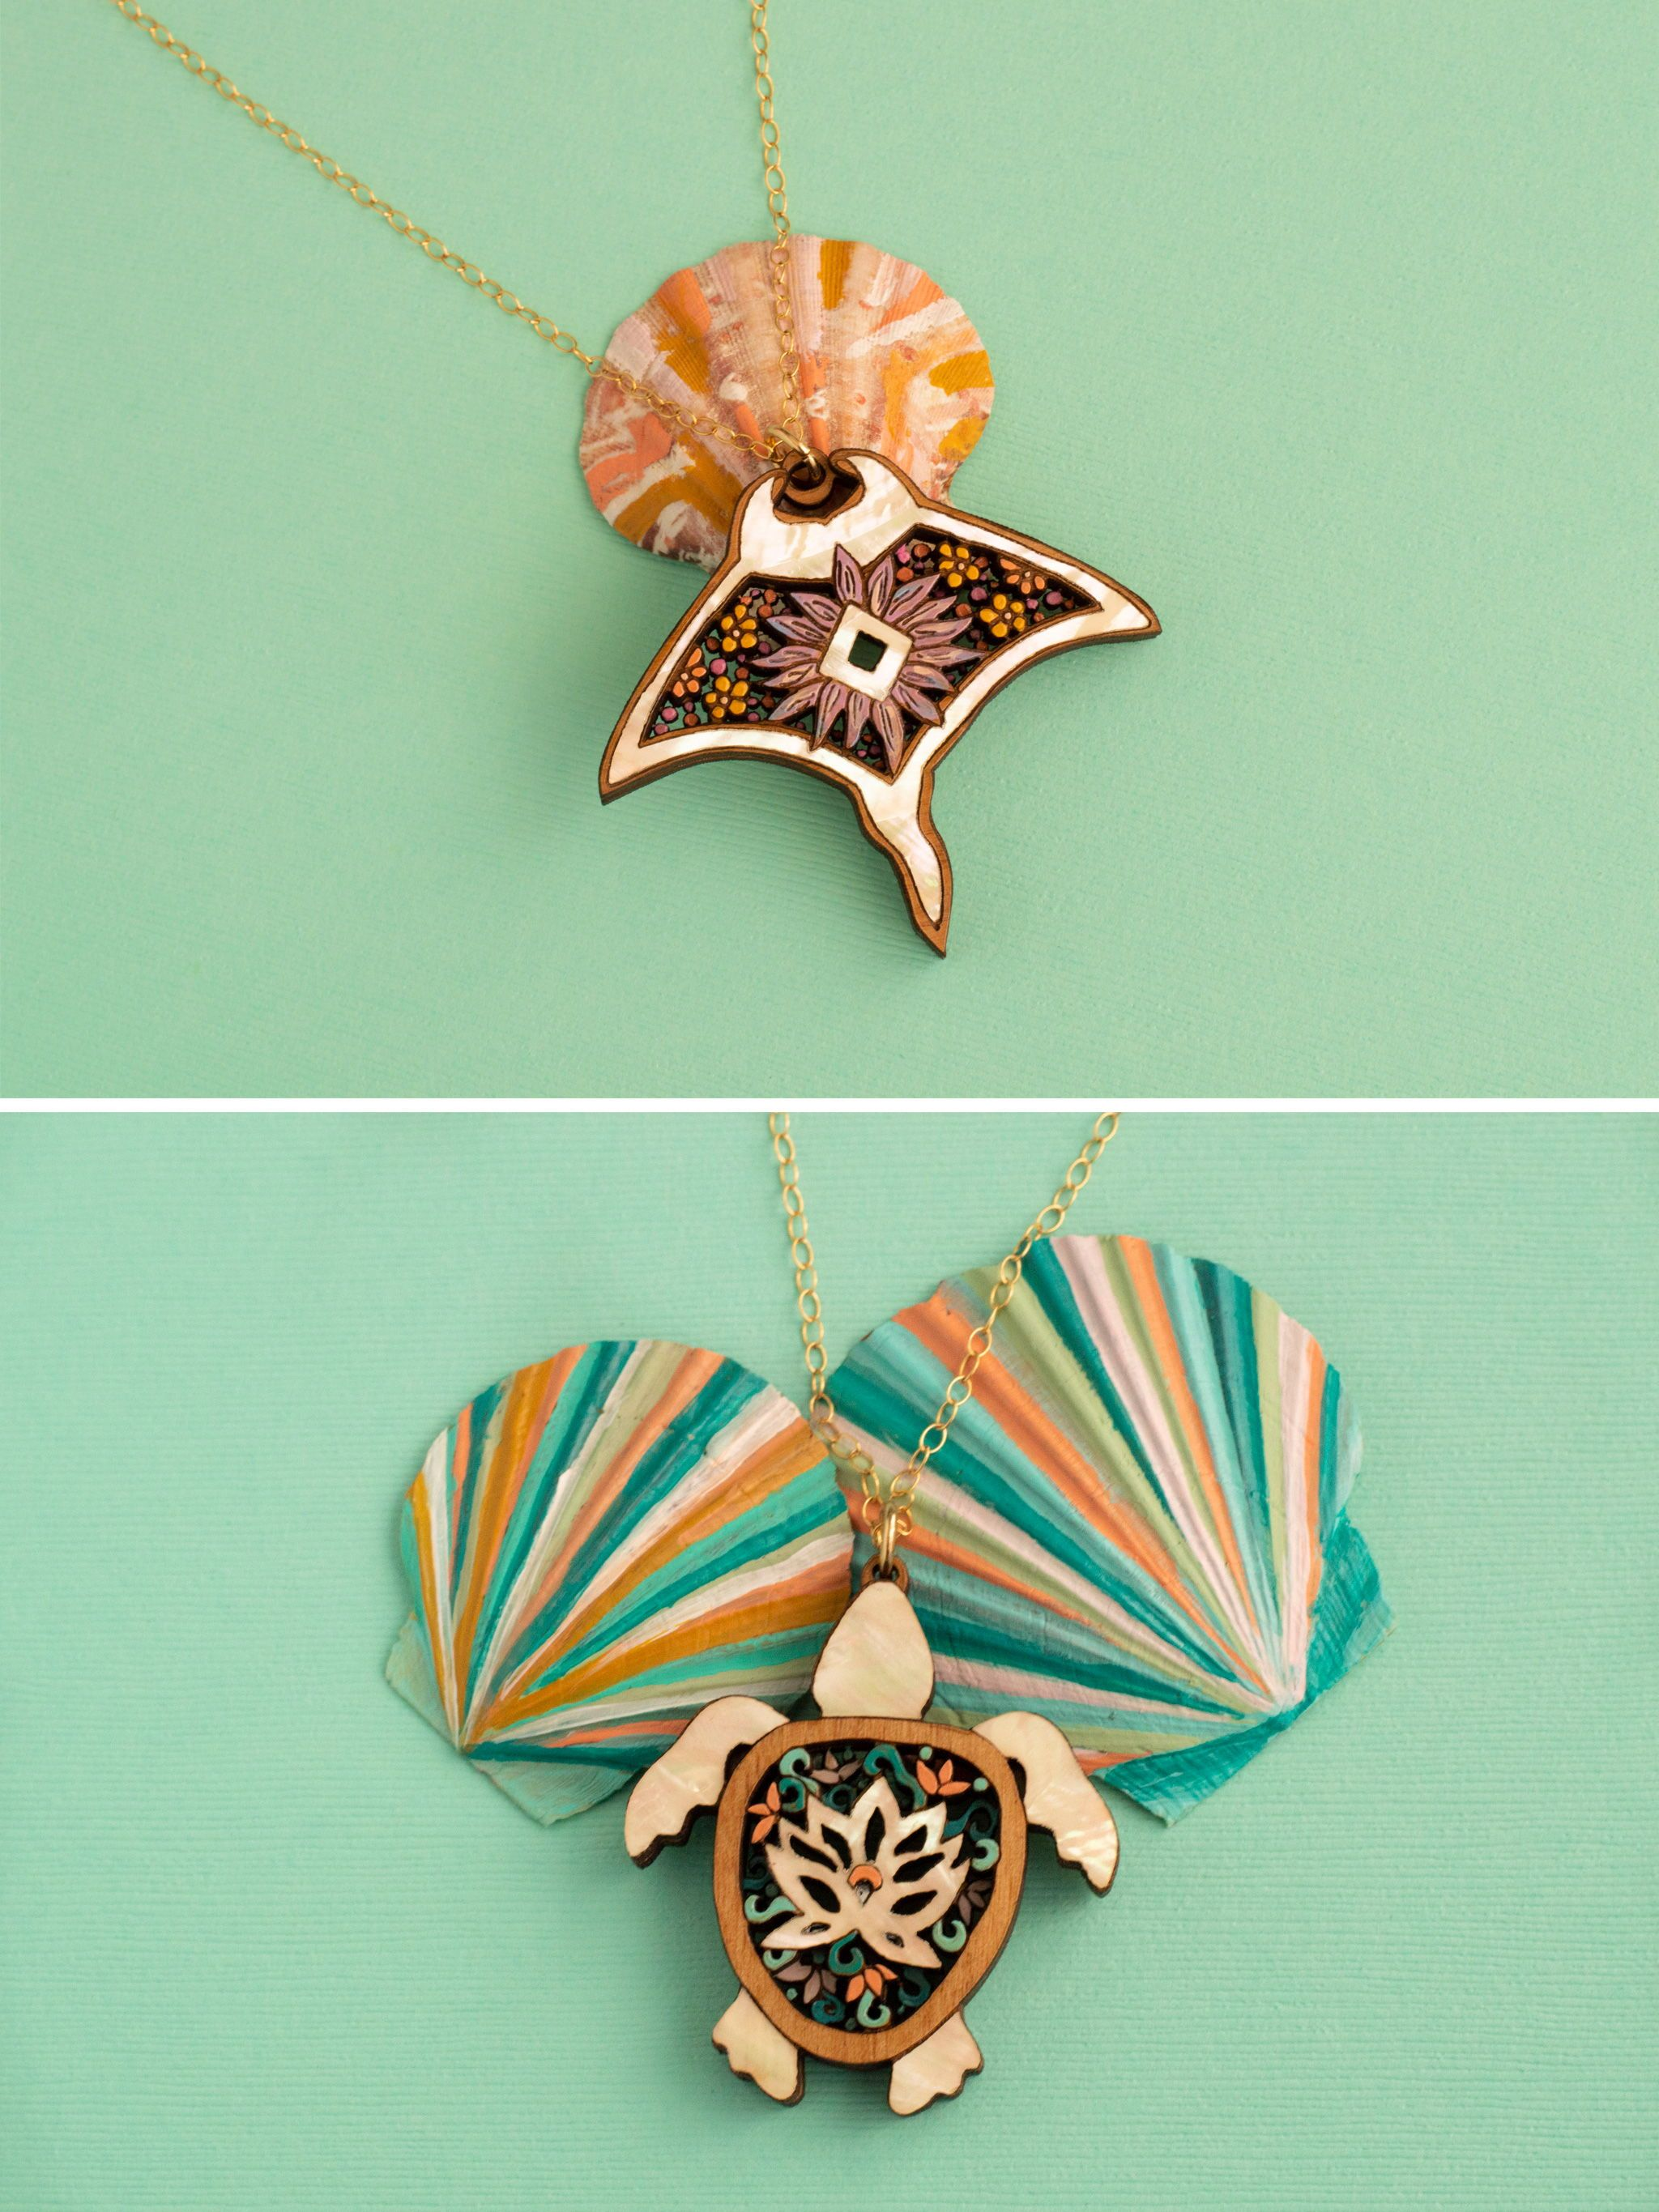 Sea Turtle Necklace With Abalone Inlay Handmade Manta Ray Wooden